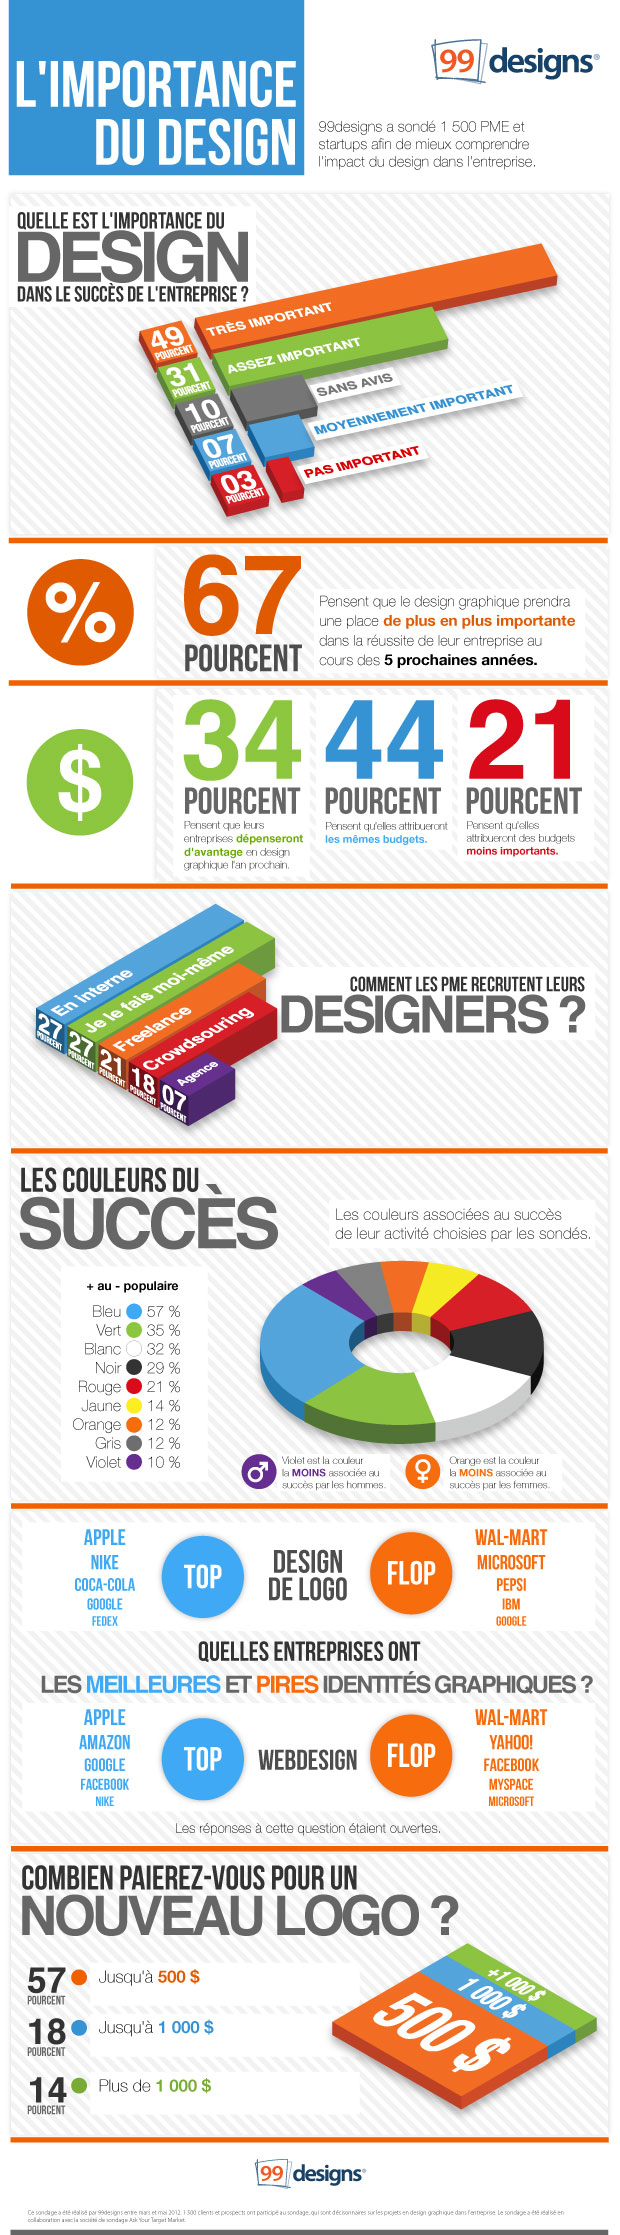 99designs-importance-du-design-1